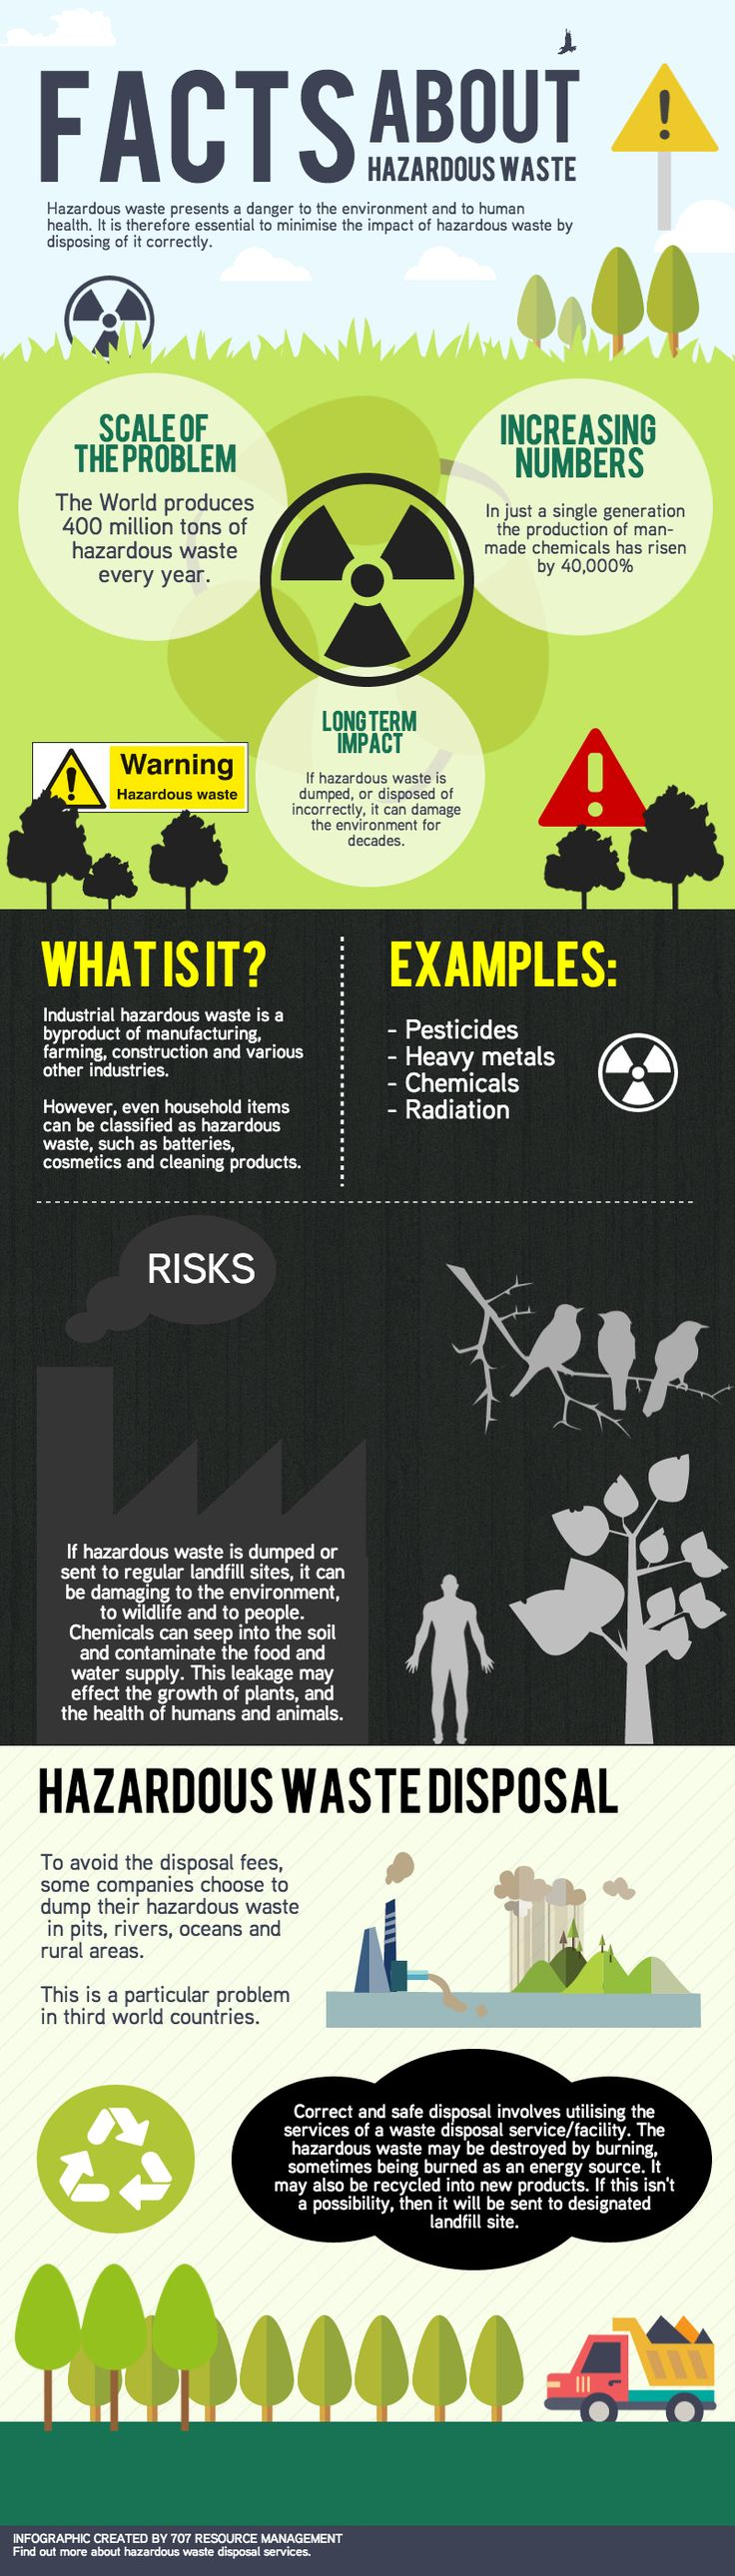 Facts about Hazardous waste